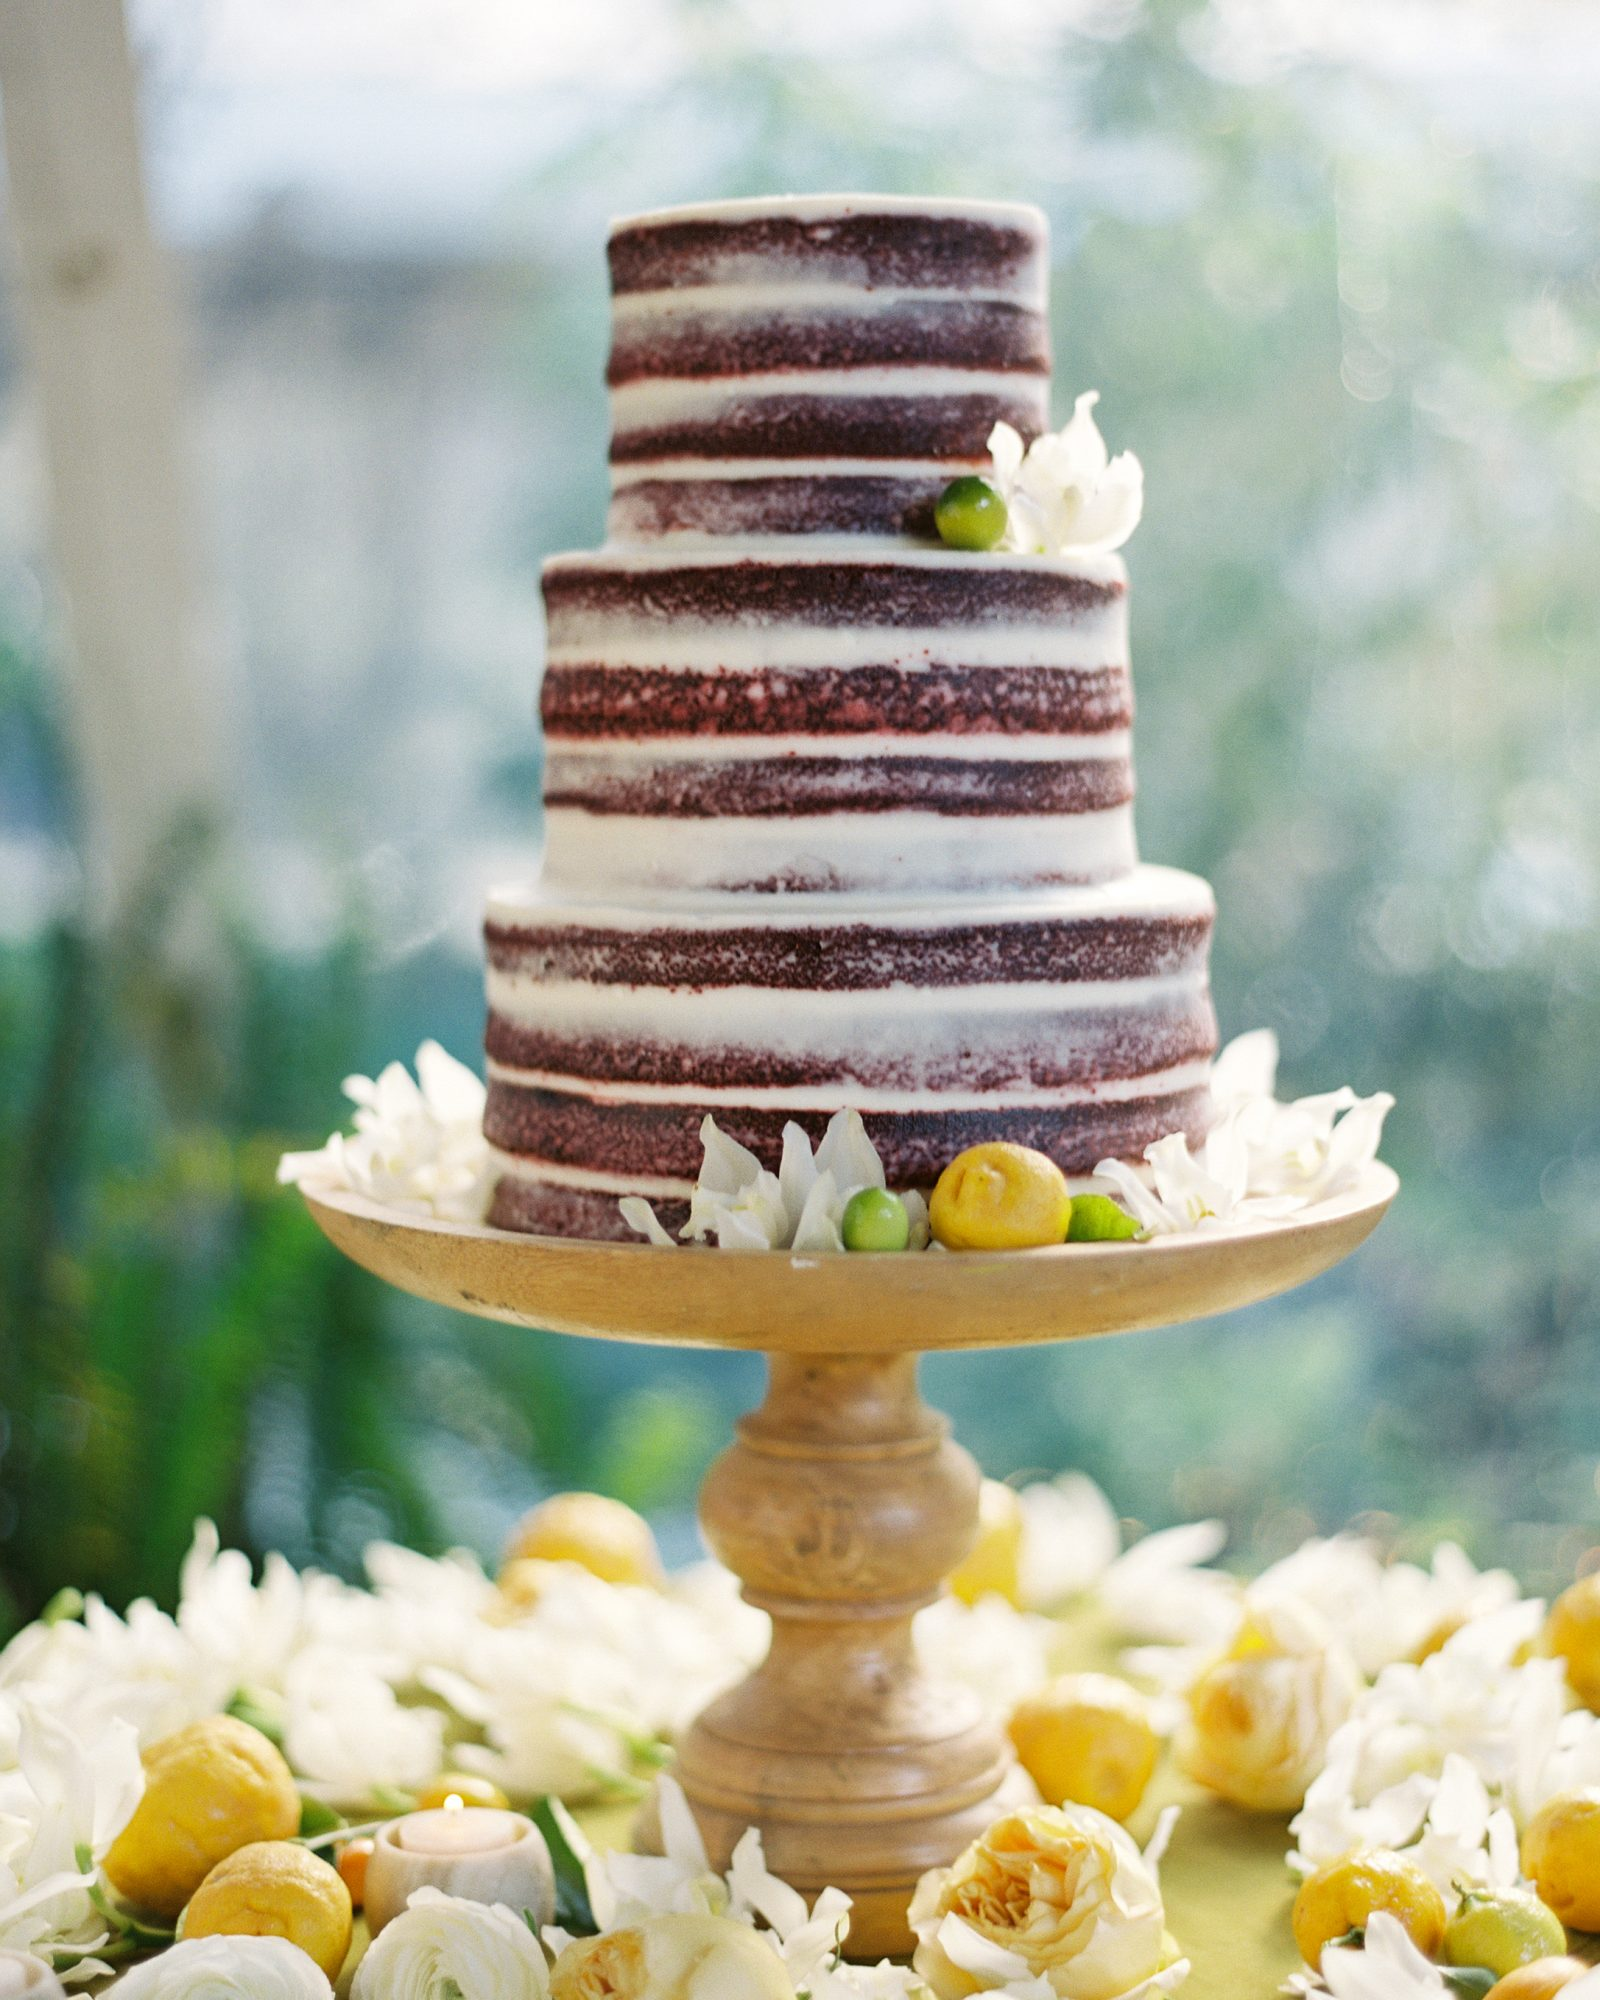 The naked wedding cake: It's a trend that's clearly here to stay, as couples and their bakers are forgoing an outer layer of icing in favor of an unfrosted confection that looks just as good as it tastes. If you're not a fan of the traditional three-tiered white wedding cake, this big-day dessert alternative might just be for you.                                       As these naked wedding cake ideas will show, there's a style for every celebration, whether you're after a naked rustic wedding cake or a modern one featuring unexpected flavors.  Naked wedding cakes aren't all about looks and taste, though. There's actually a serious benefit to choosing an unfrosted confection, and that's freshness.                                       Because frosting locks in moisture, a baker is able to whip up a traditional wedding cake in advance of the big day, then add the finishing touches right before delivery. That's not the case with an exposed wedding cake, which needs to be baked relatively close in time to the reception to ensure each layer is fresh, moist, and delicious. That means your pro will likely pop your tiers into the oven the night before or even the day of your nuptials. Nothing beats a cake baked just hours before it's eaten, right?                                        Whatever your reason for choosing one, you'll soon see that bare wedding cakes can be chic, sophisticated, and beautiful—not too sweet, but just sweet enough. Click through to see some of our favorite examples, starting with this stunning half-dressed wedding cake (topped with lemons and limes) by Lelé Pâtisserie.